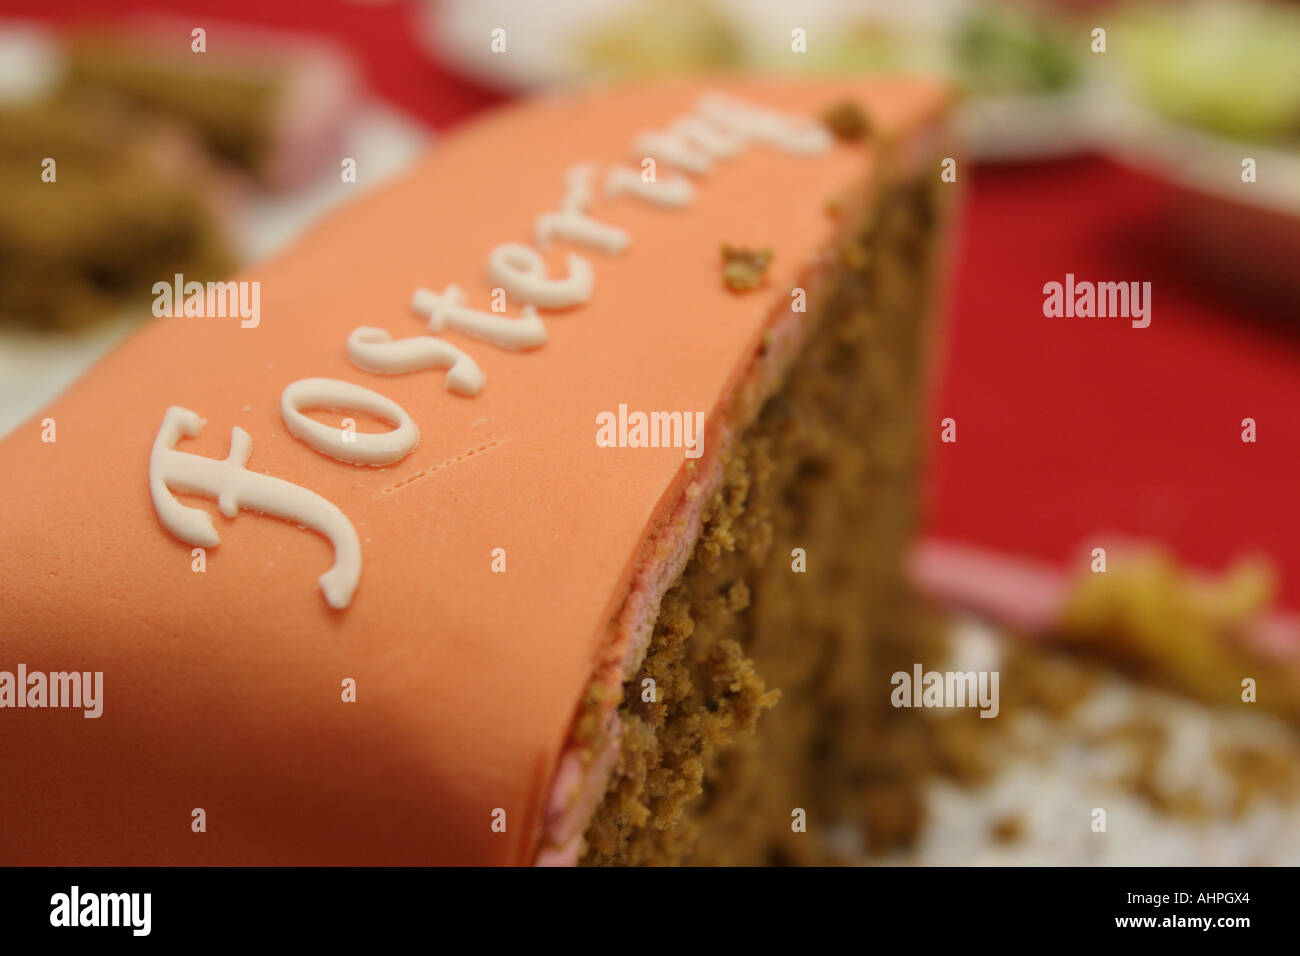 A slice of cake with the word Fostering iced on it. - Stock Image